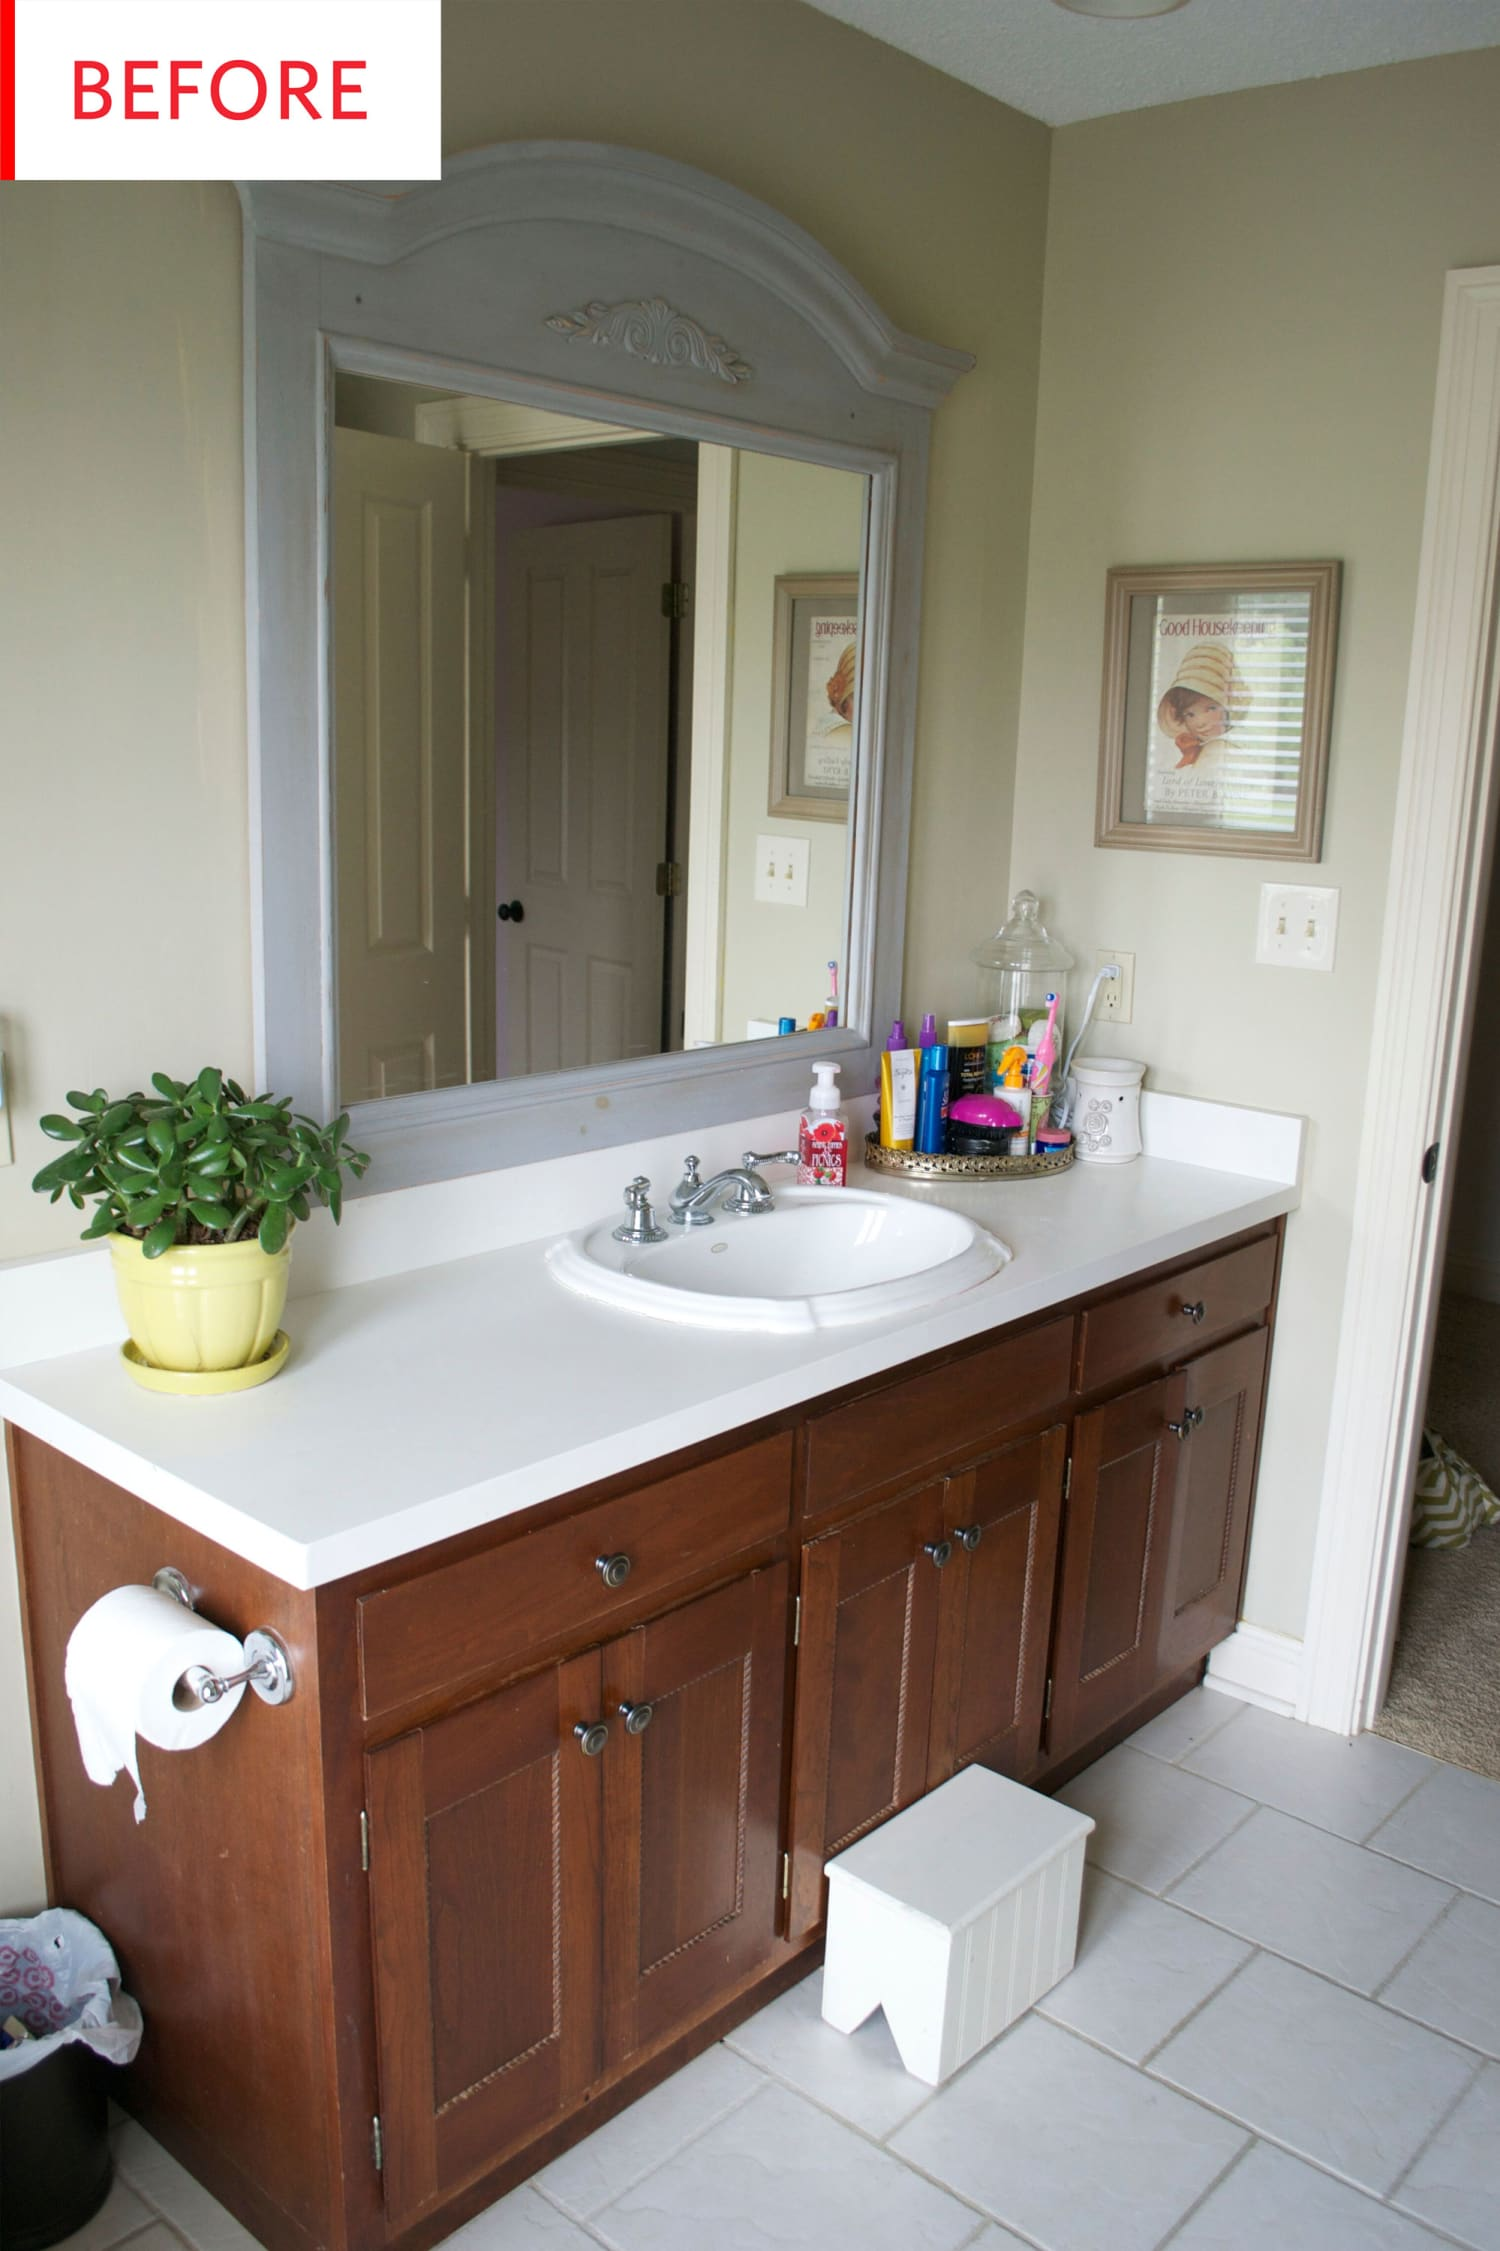 Before and After: A Run-of-the-Mill Bathroom Gets an Elegant, DIY Upgrade